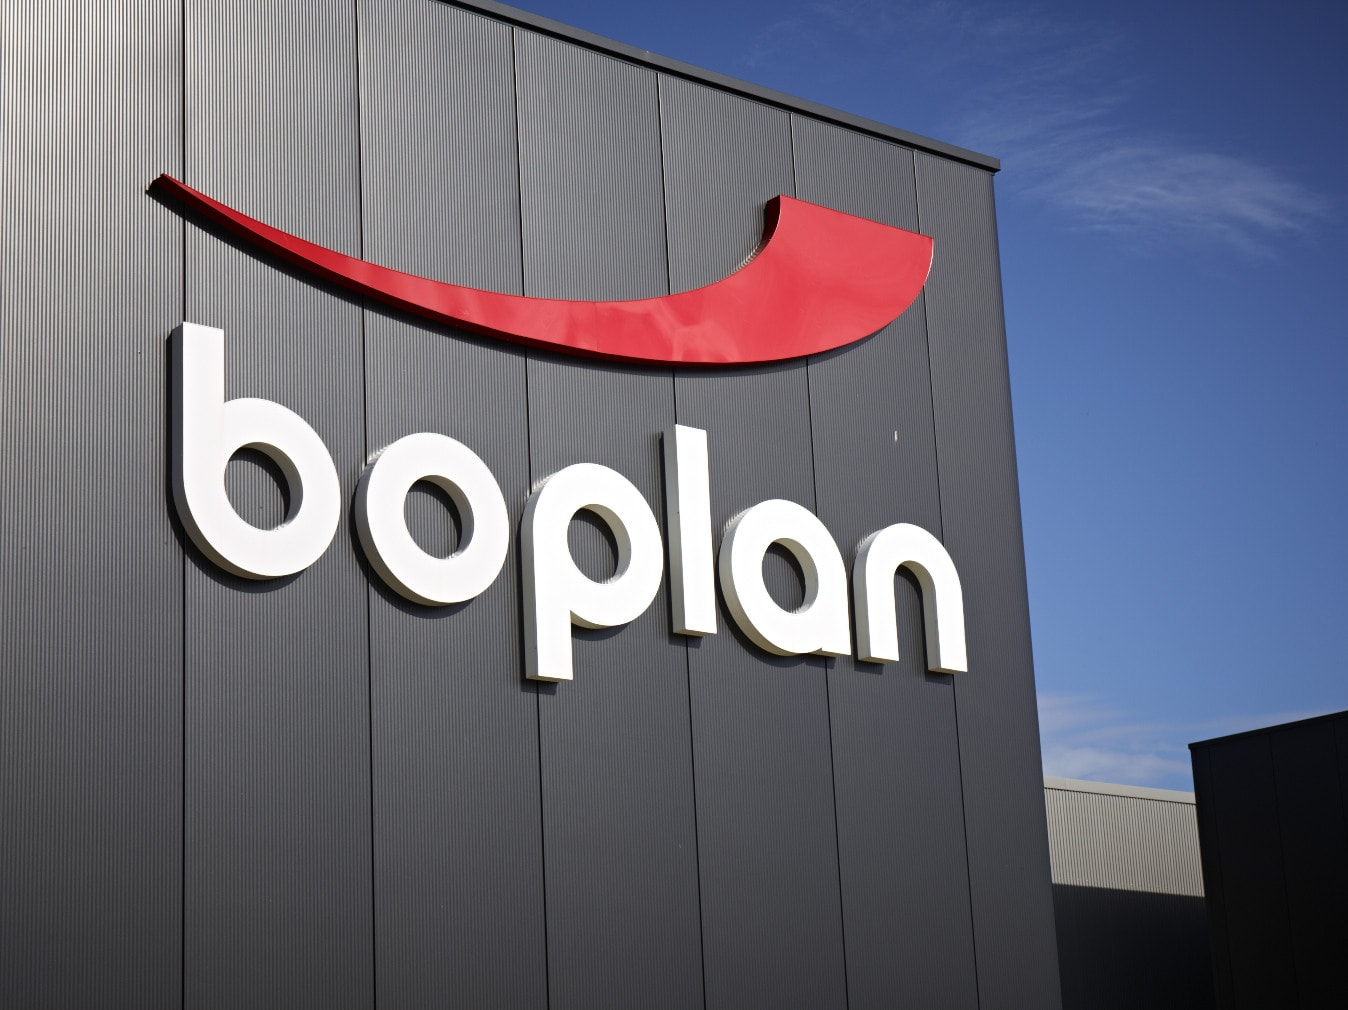 Boplan Cookie Policy